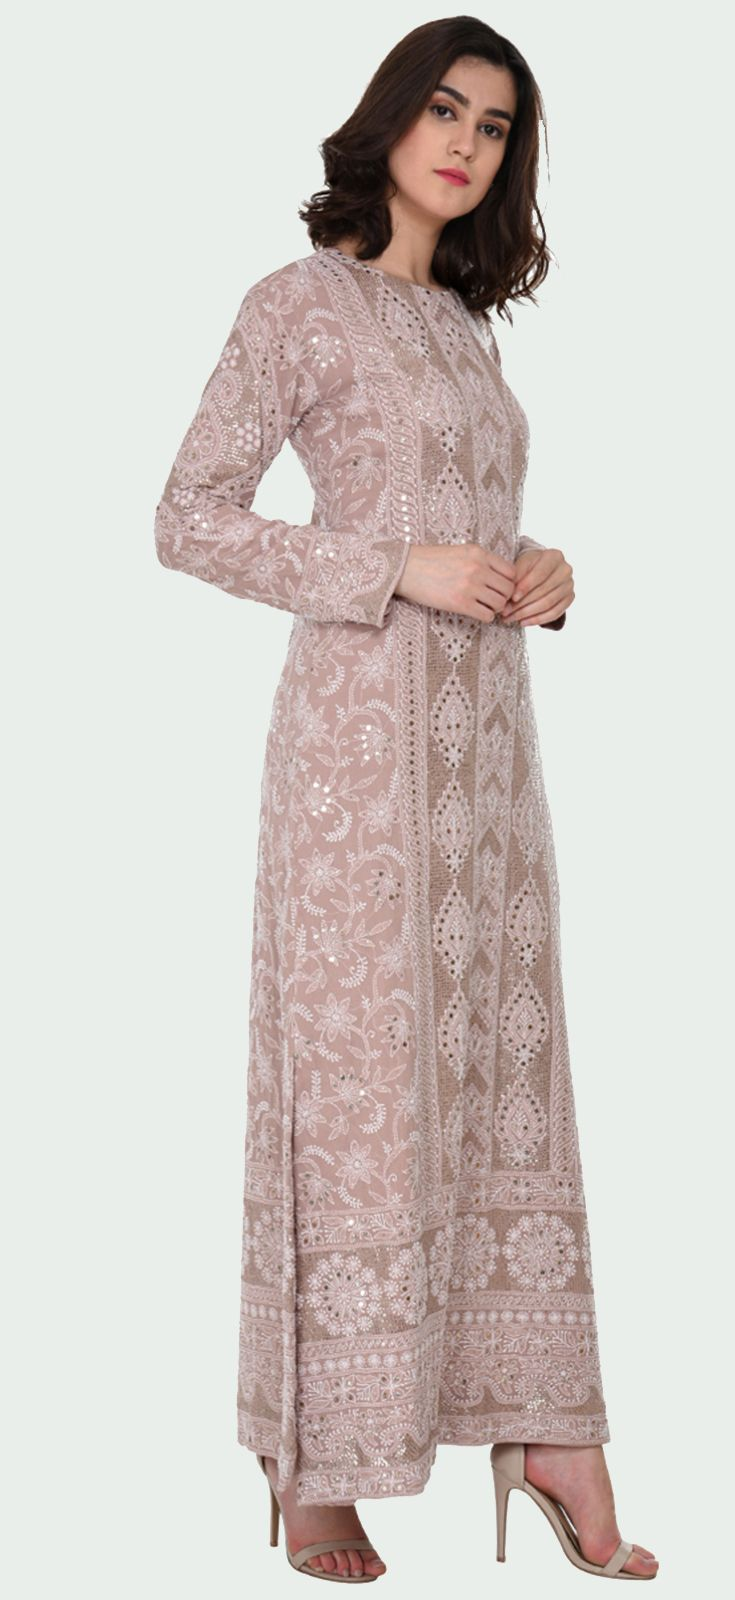 Hazelnut Chikankari And Kamdani Peshwa Floor Length Suit